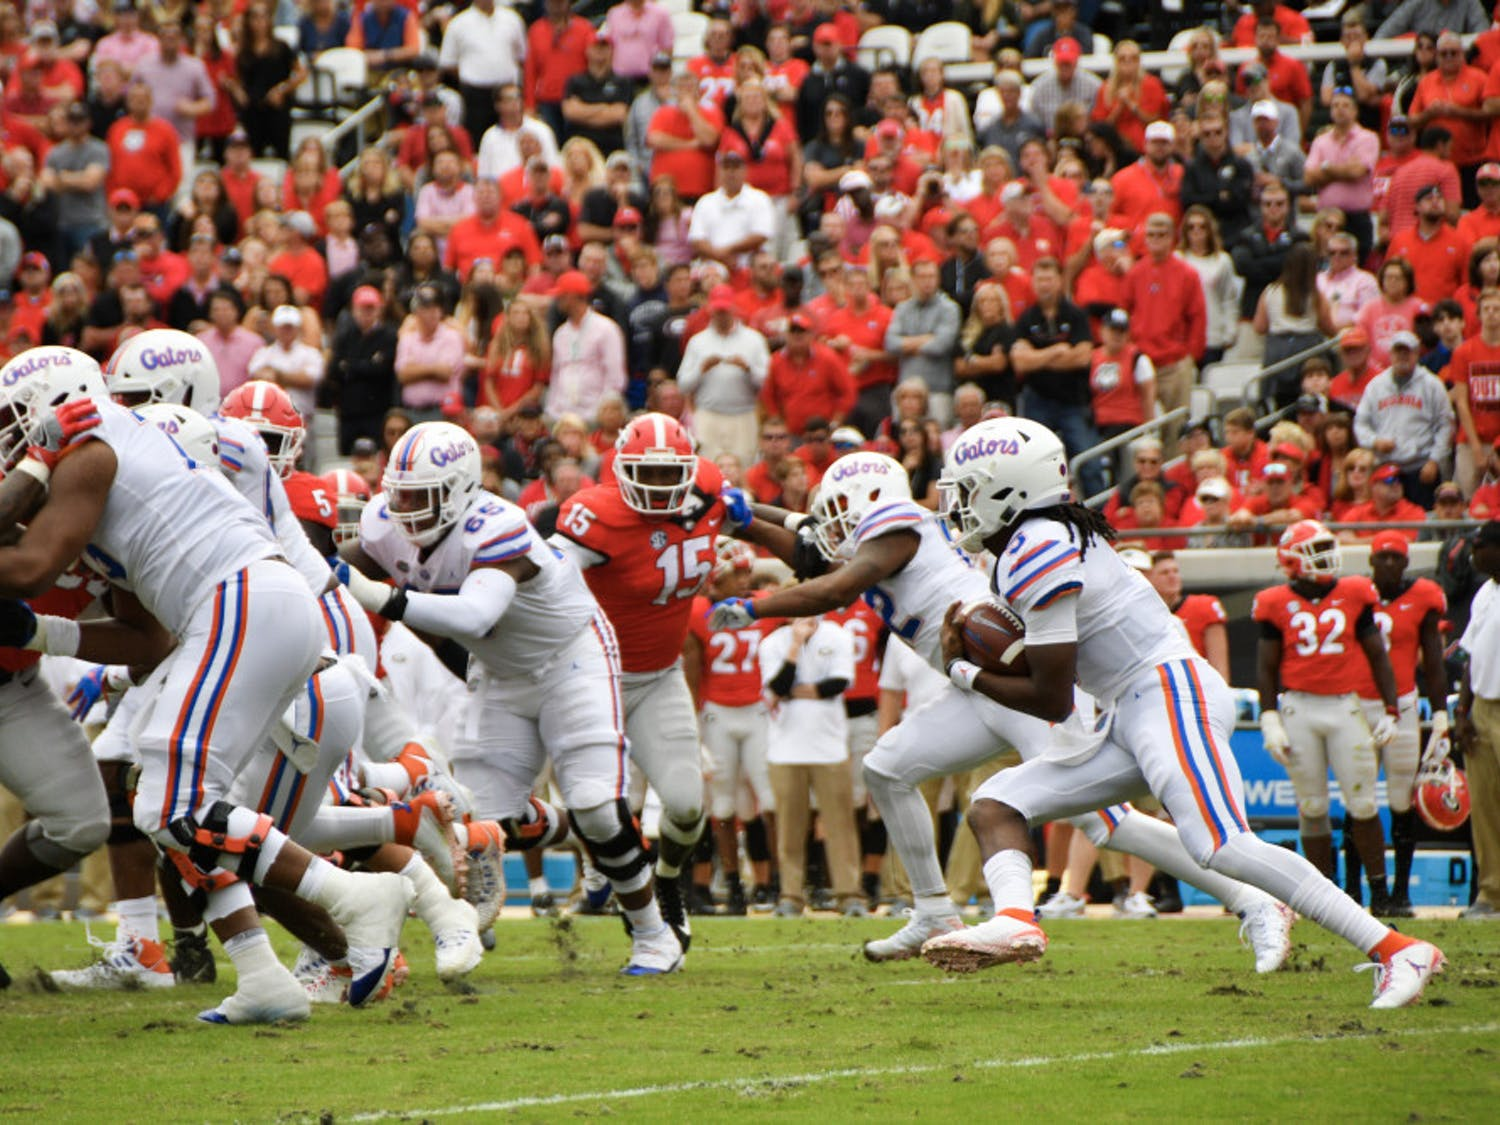 Emory Jones and the new-look UF offense take the field Sept. 4 against FAU